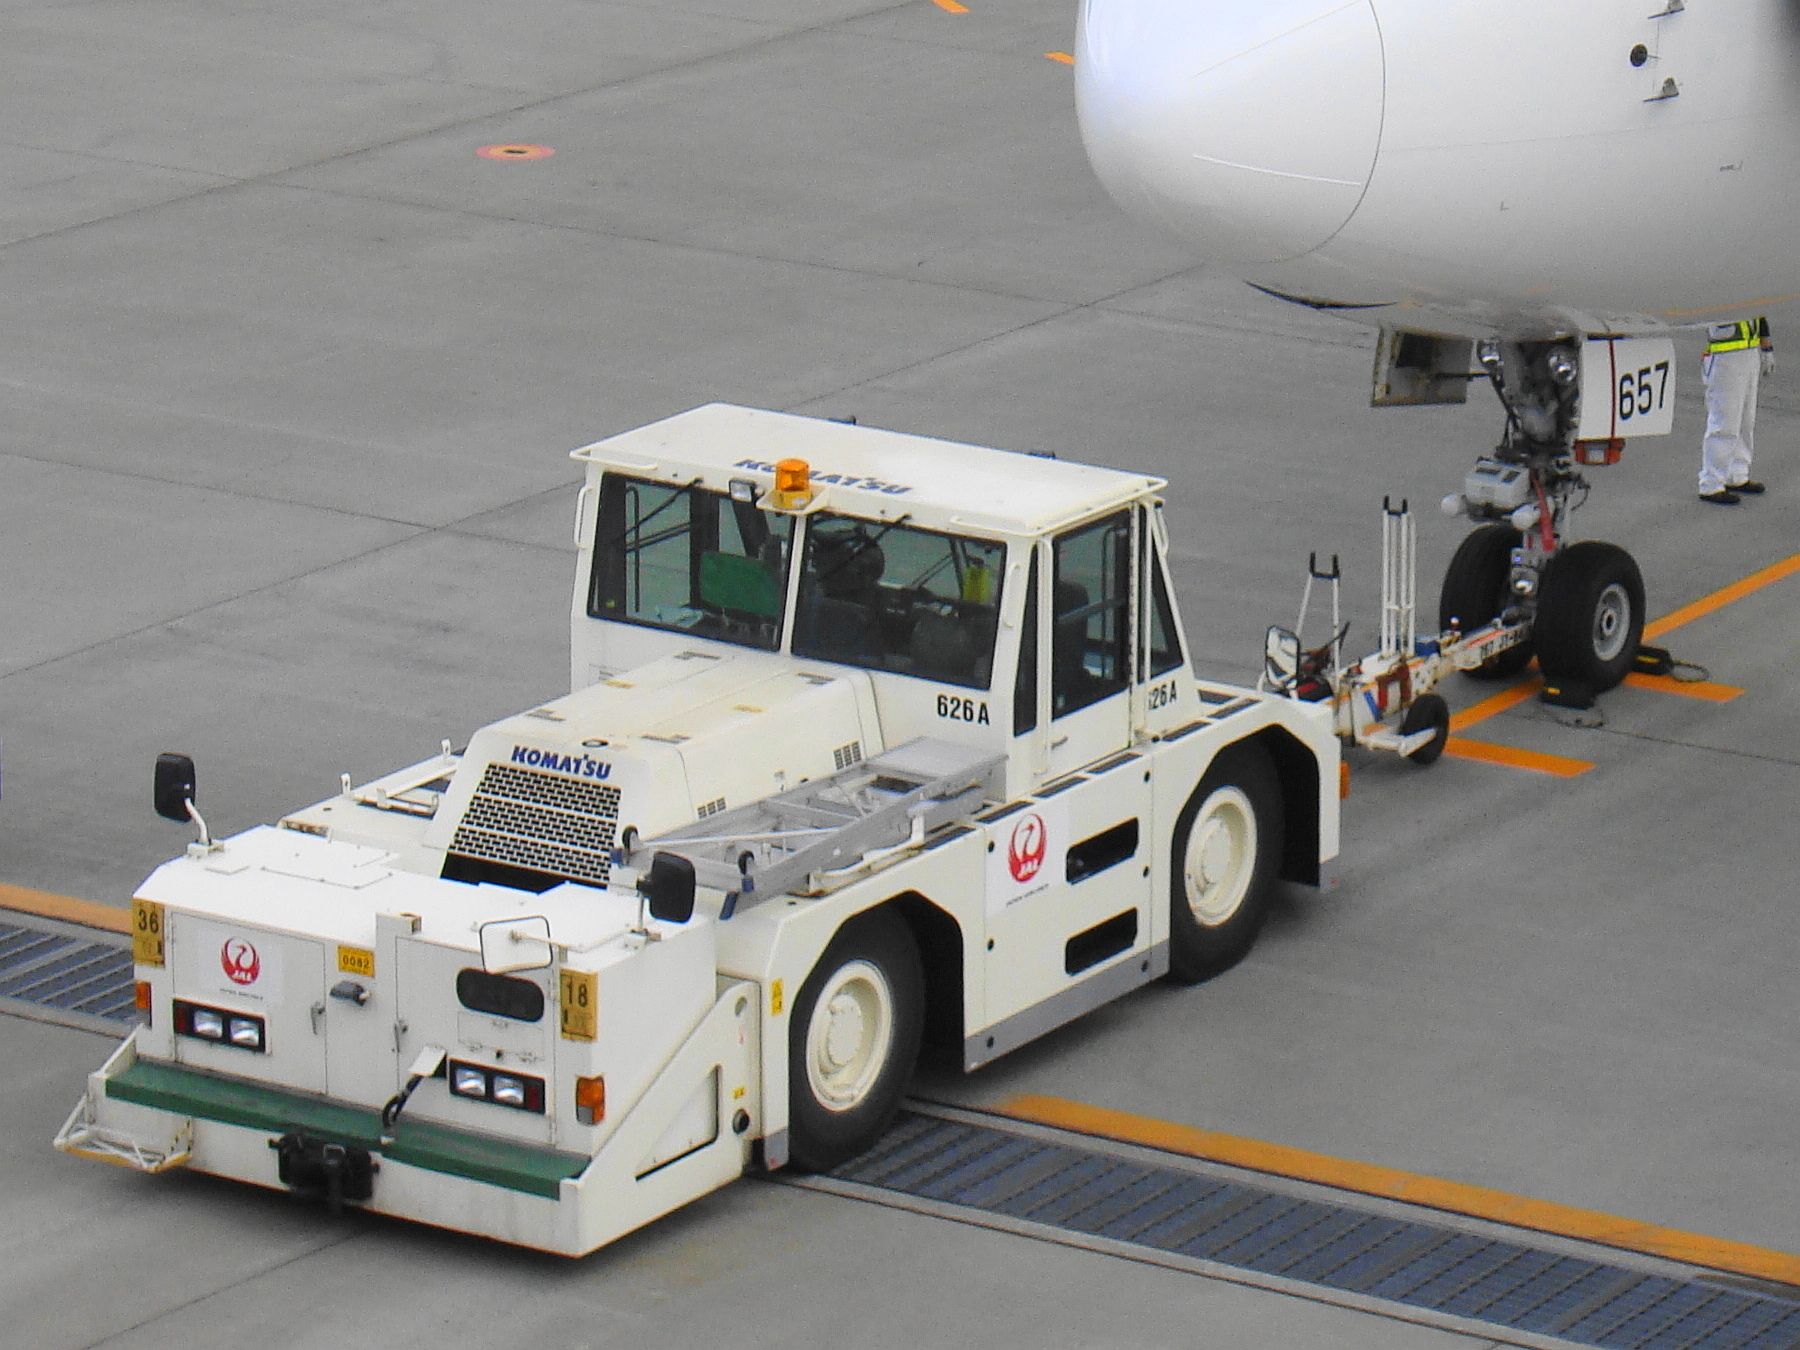 file jal pushback tractor01 jpg wikimedia commons